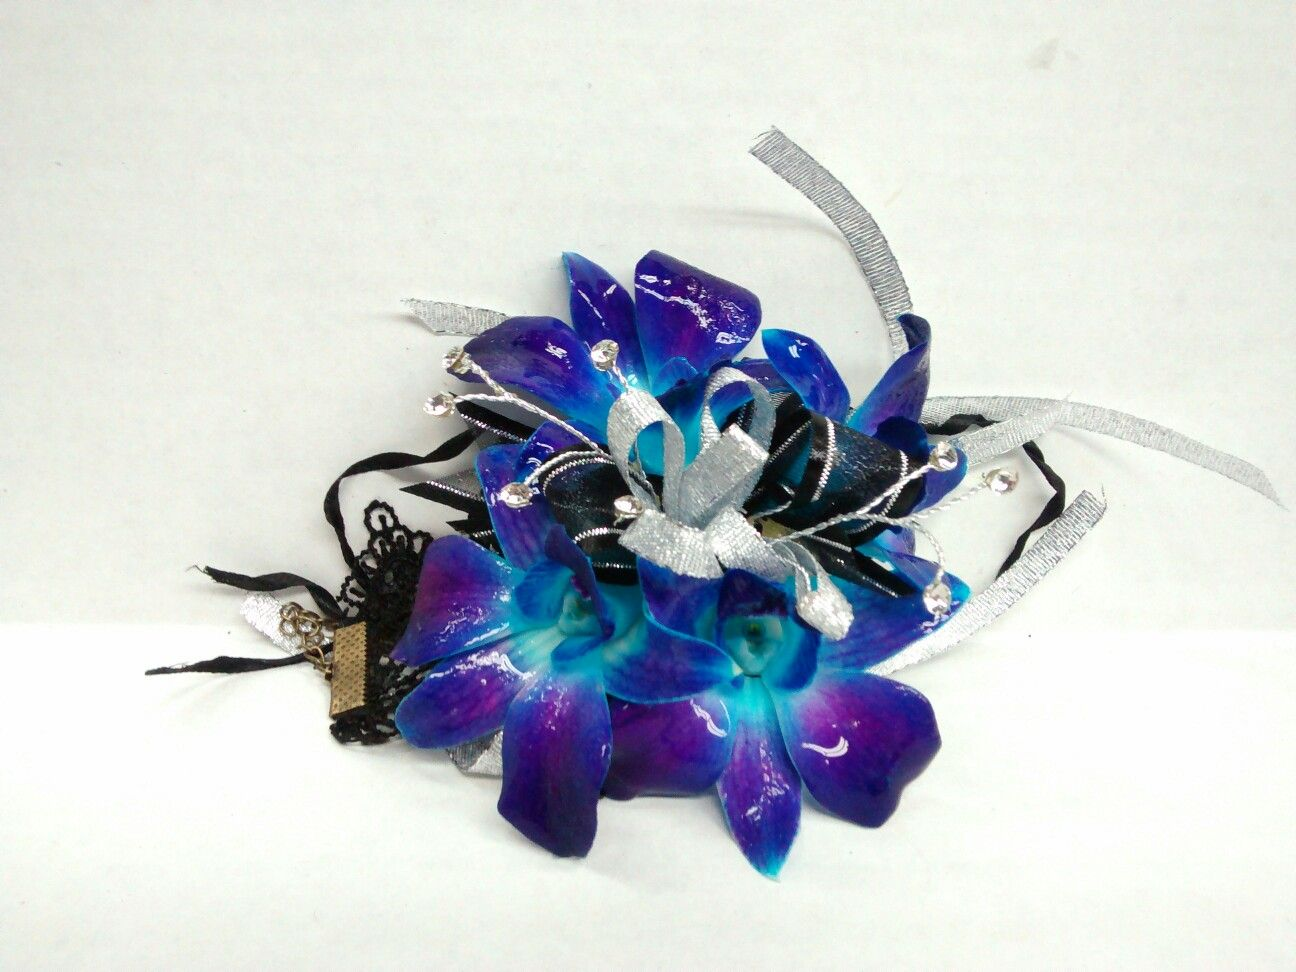 Blue dendrobium orchid corsage with lace wristlet and silver accents